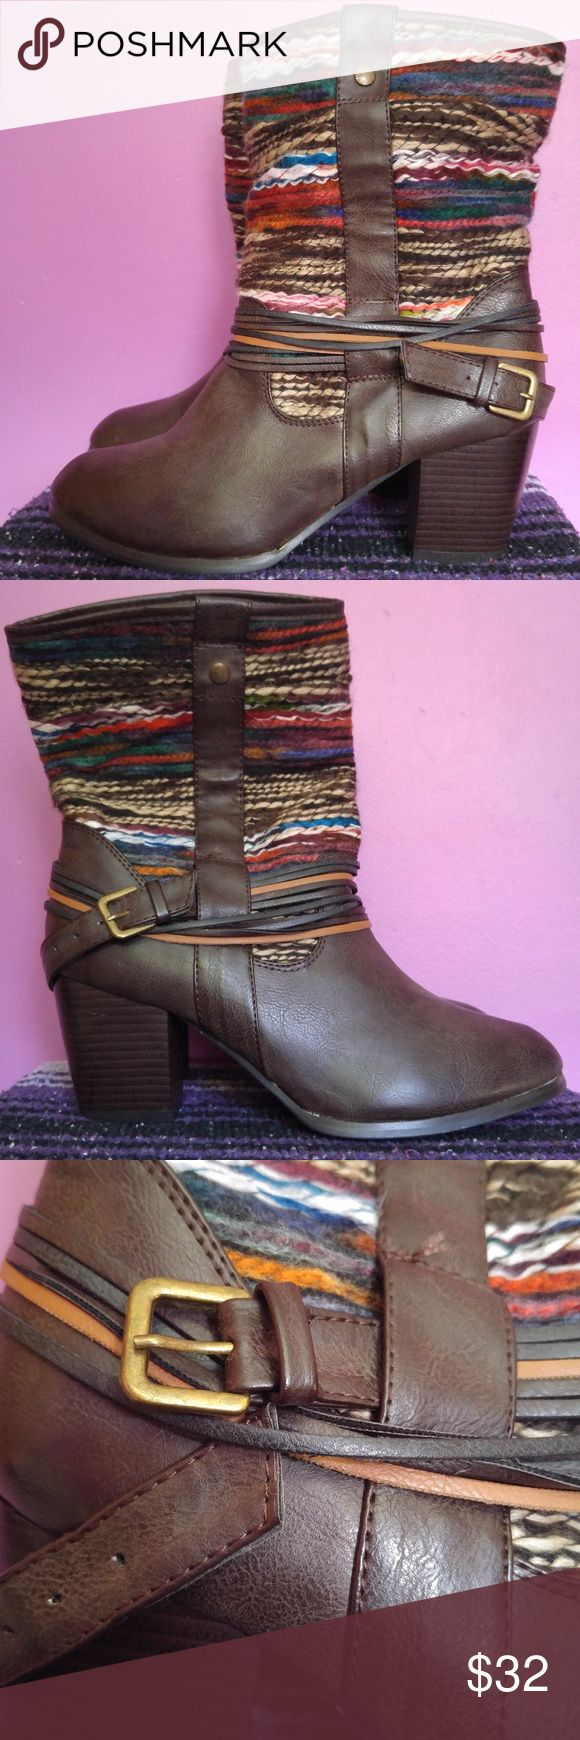 Body Central Brown Leather Ankle Booties Boots 9 BRAND: Body Central  CONDITION: Used condition, minor general wear. A few white scuffs on the rear heel of the right boot. Please view all pictures for more details.  SIZE: Women's 9   STYLE: Ankle booties  CLOSURE: Slip on, side buckle  COLORS: Multi-color, brown Colors shown in pictures may vary slightly from the actual item, due to different lighting and/or screen resolutions.   STORAGE ENVIRONMENT: Smoke-free, pet-free Body Central Shoes…